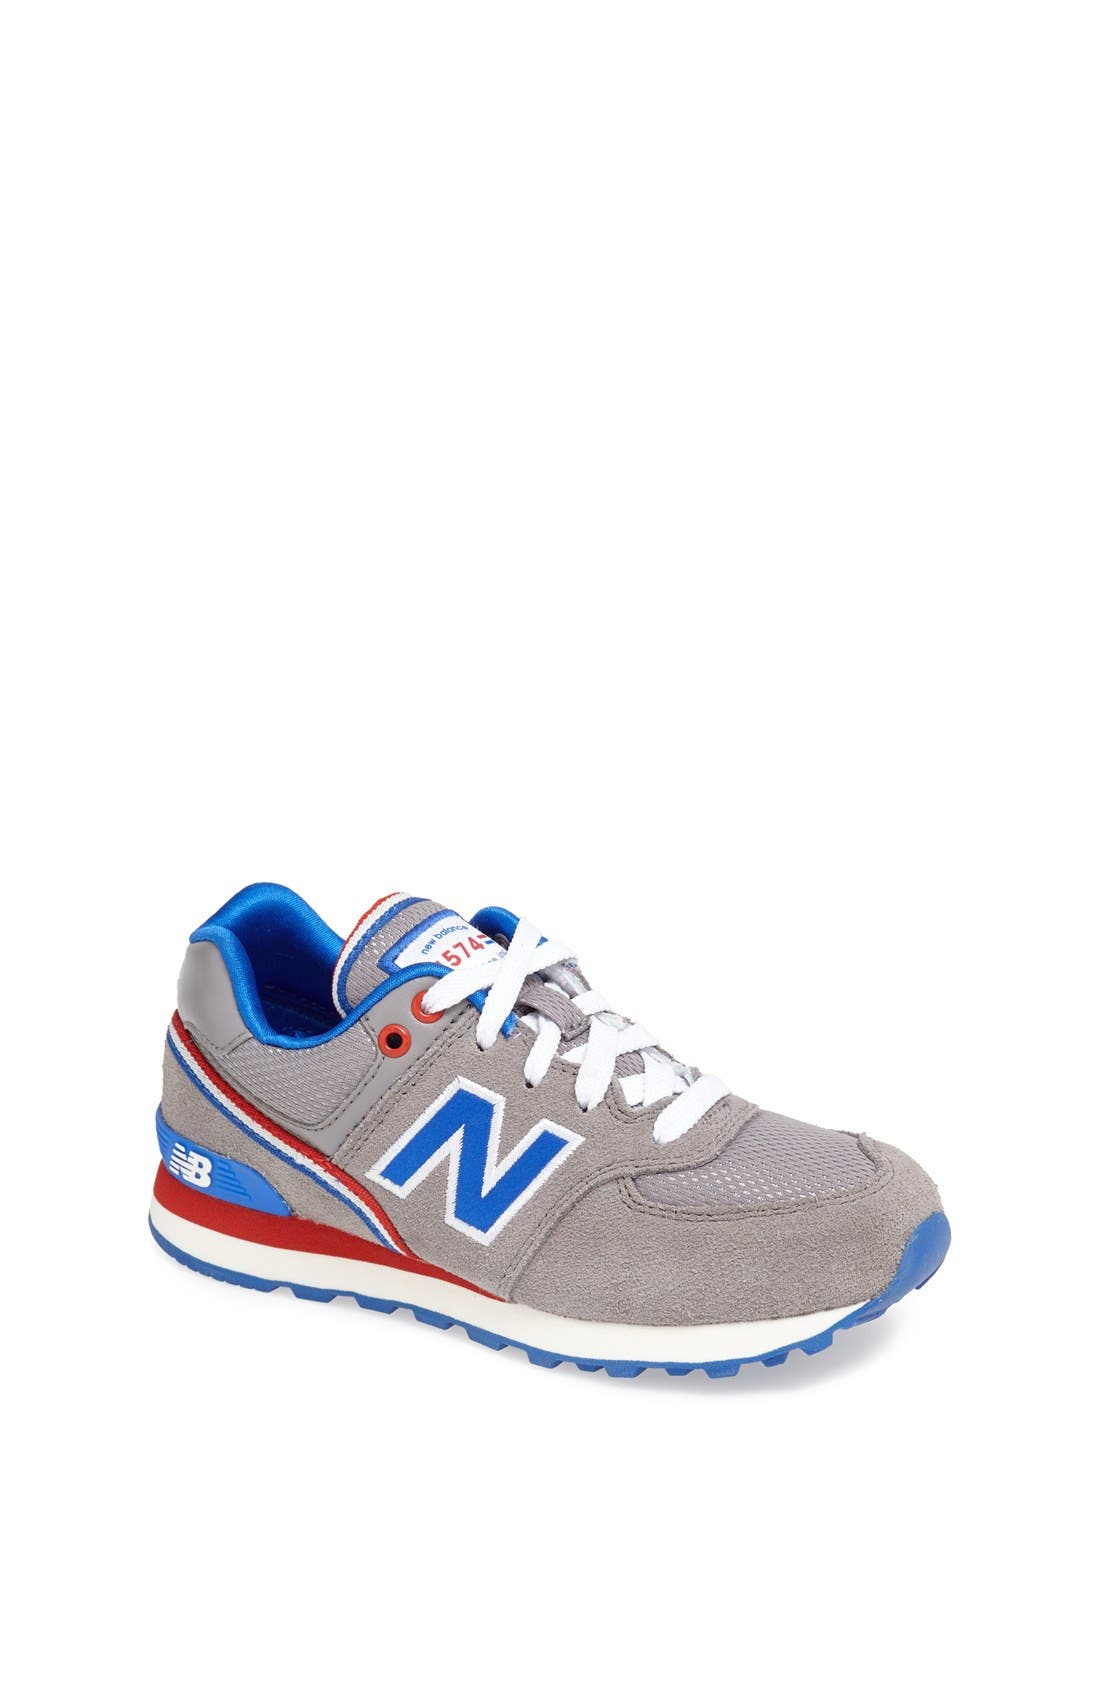 Main Image - New Balance '574 Jacket' Sneaker (Baby, Walker, Toddler, Little Kid & Big Kid)